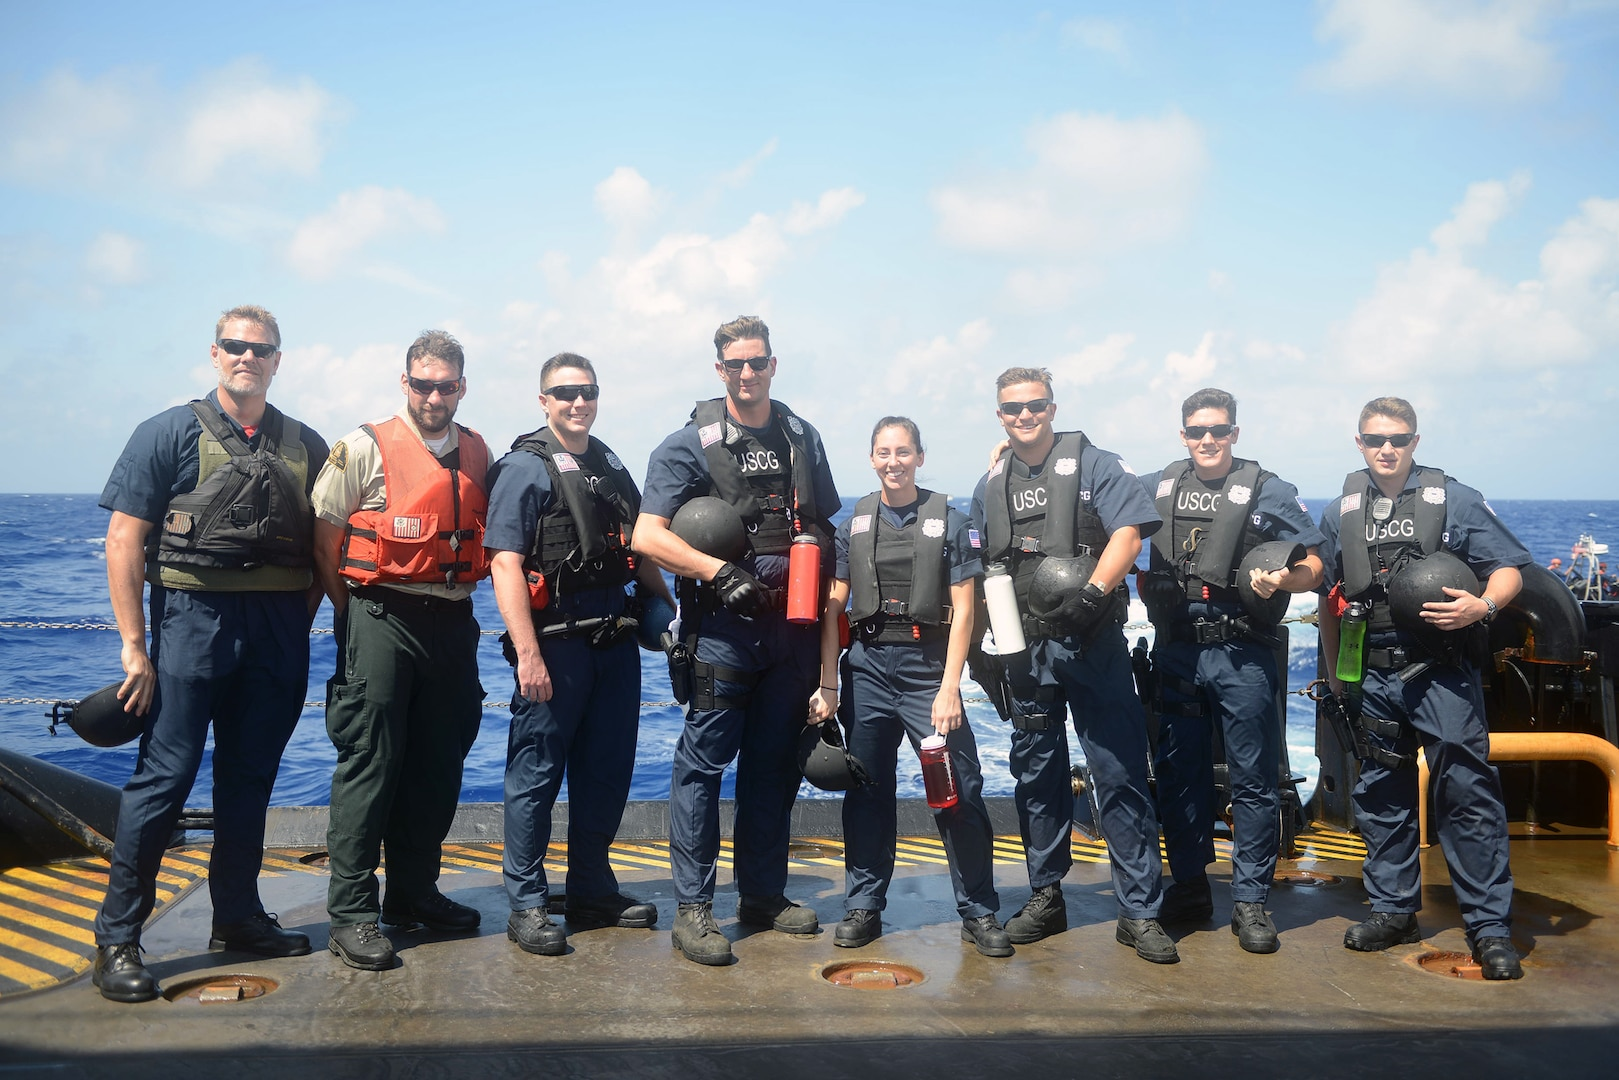 Operation Island Chief: Strengthening Pacific Partnerships